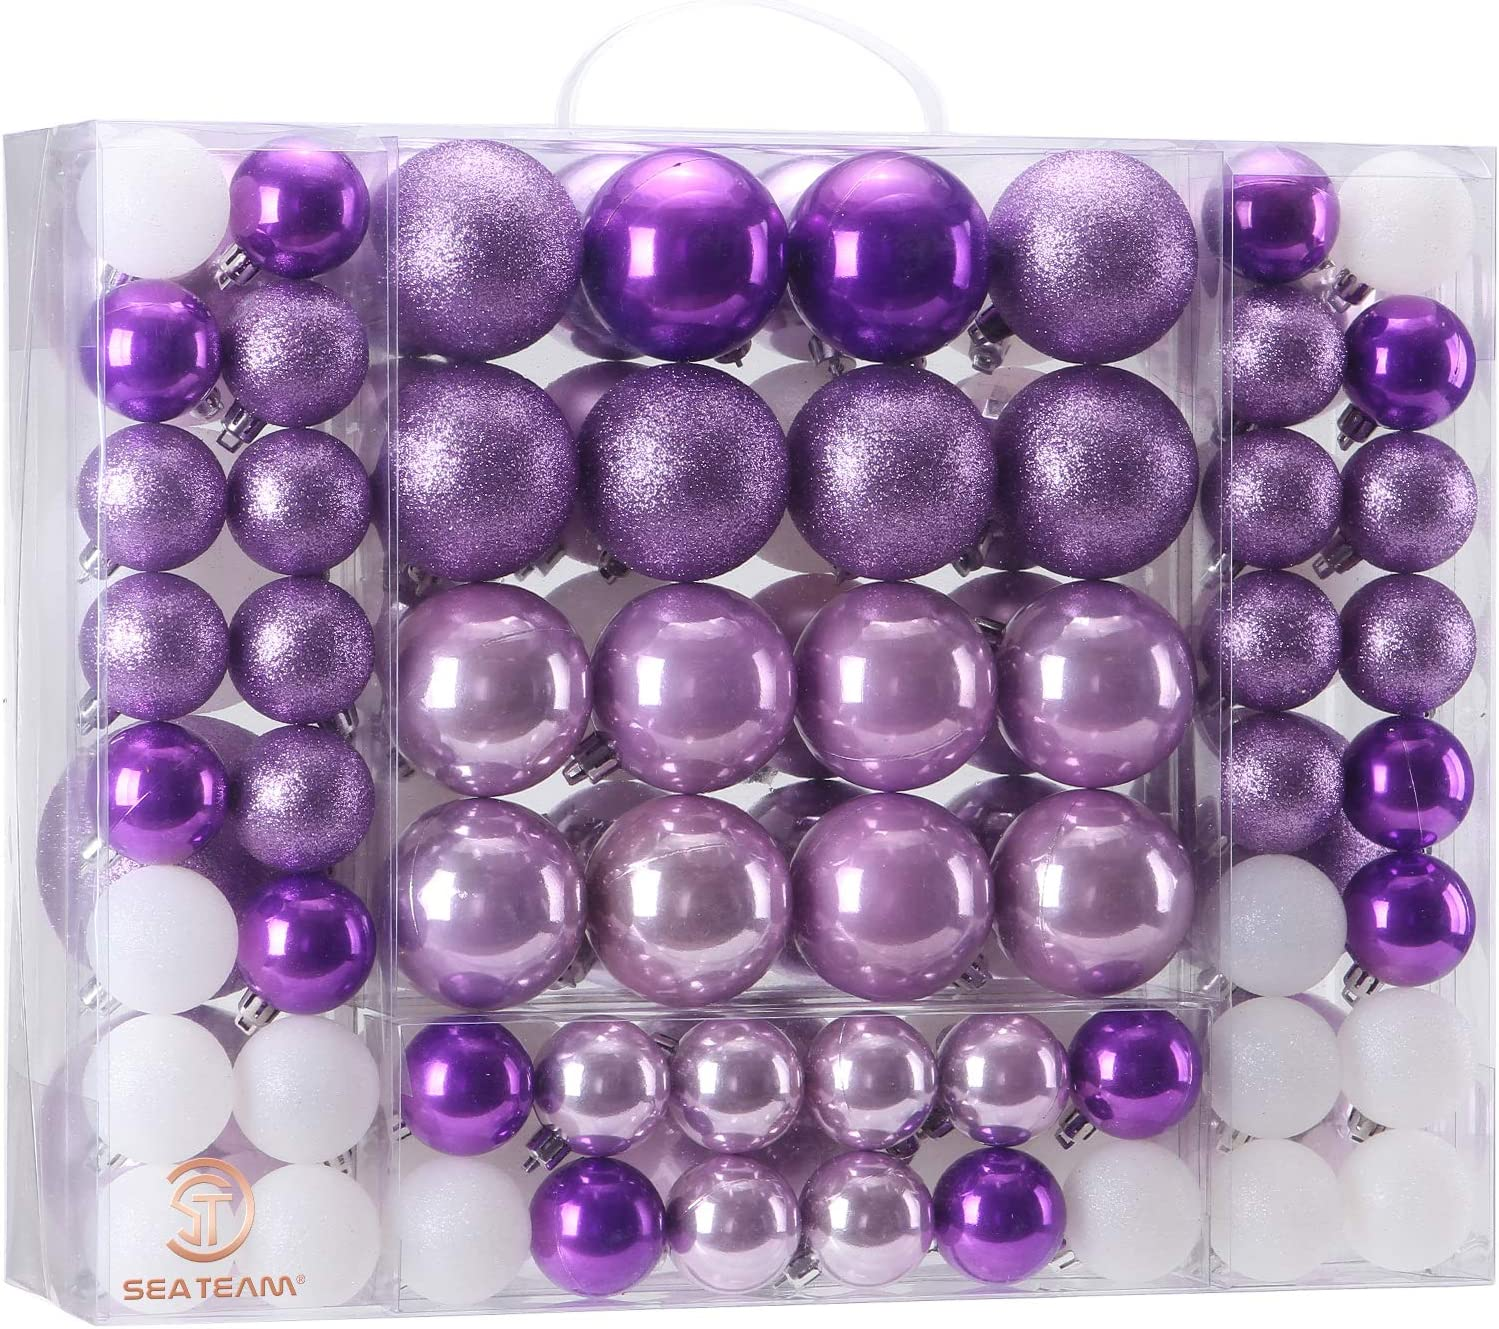 Sea Team 87 Pieces of Assorted Christmas Ball Ornaments Shatterproof Seasonal Decorative Hanging Baubles Set with Reusable Hand-held Gift Package for Holiday Xmas Tree Decorations, Purple